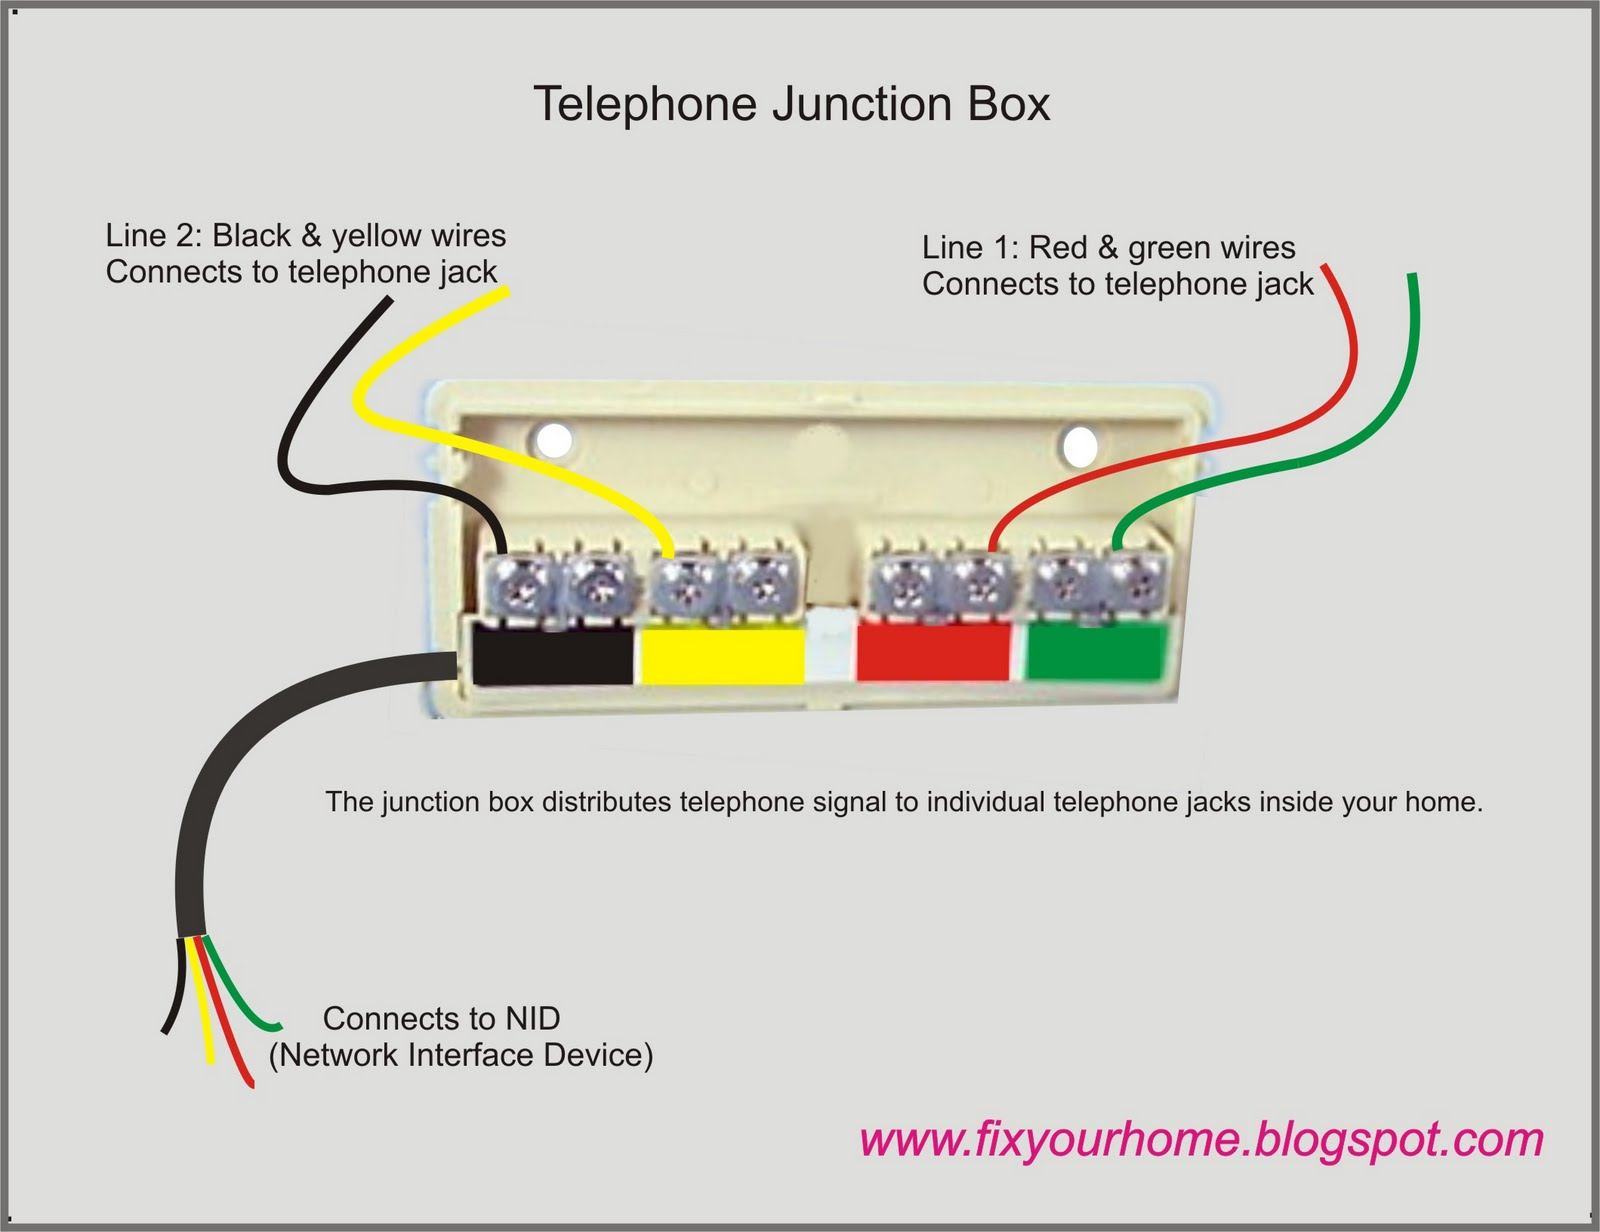 Telephone Rj11 Diagram Starting Know About Wiring Serial Pinout To Rj45 Adapter Free Image A Junction Box Get Australia